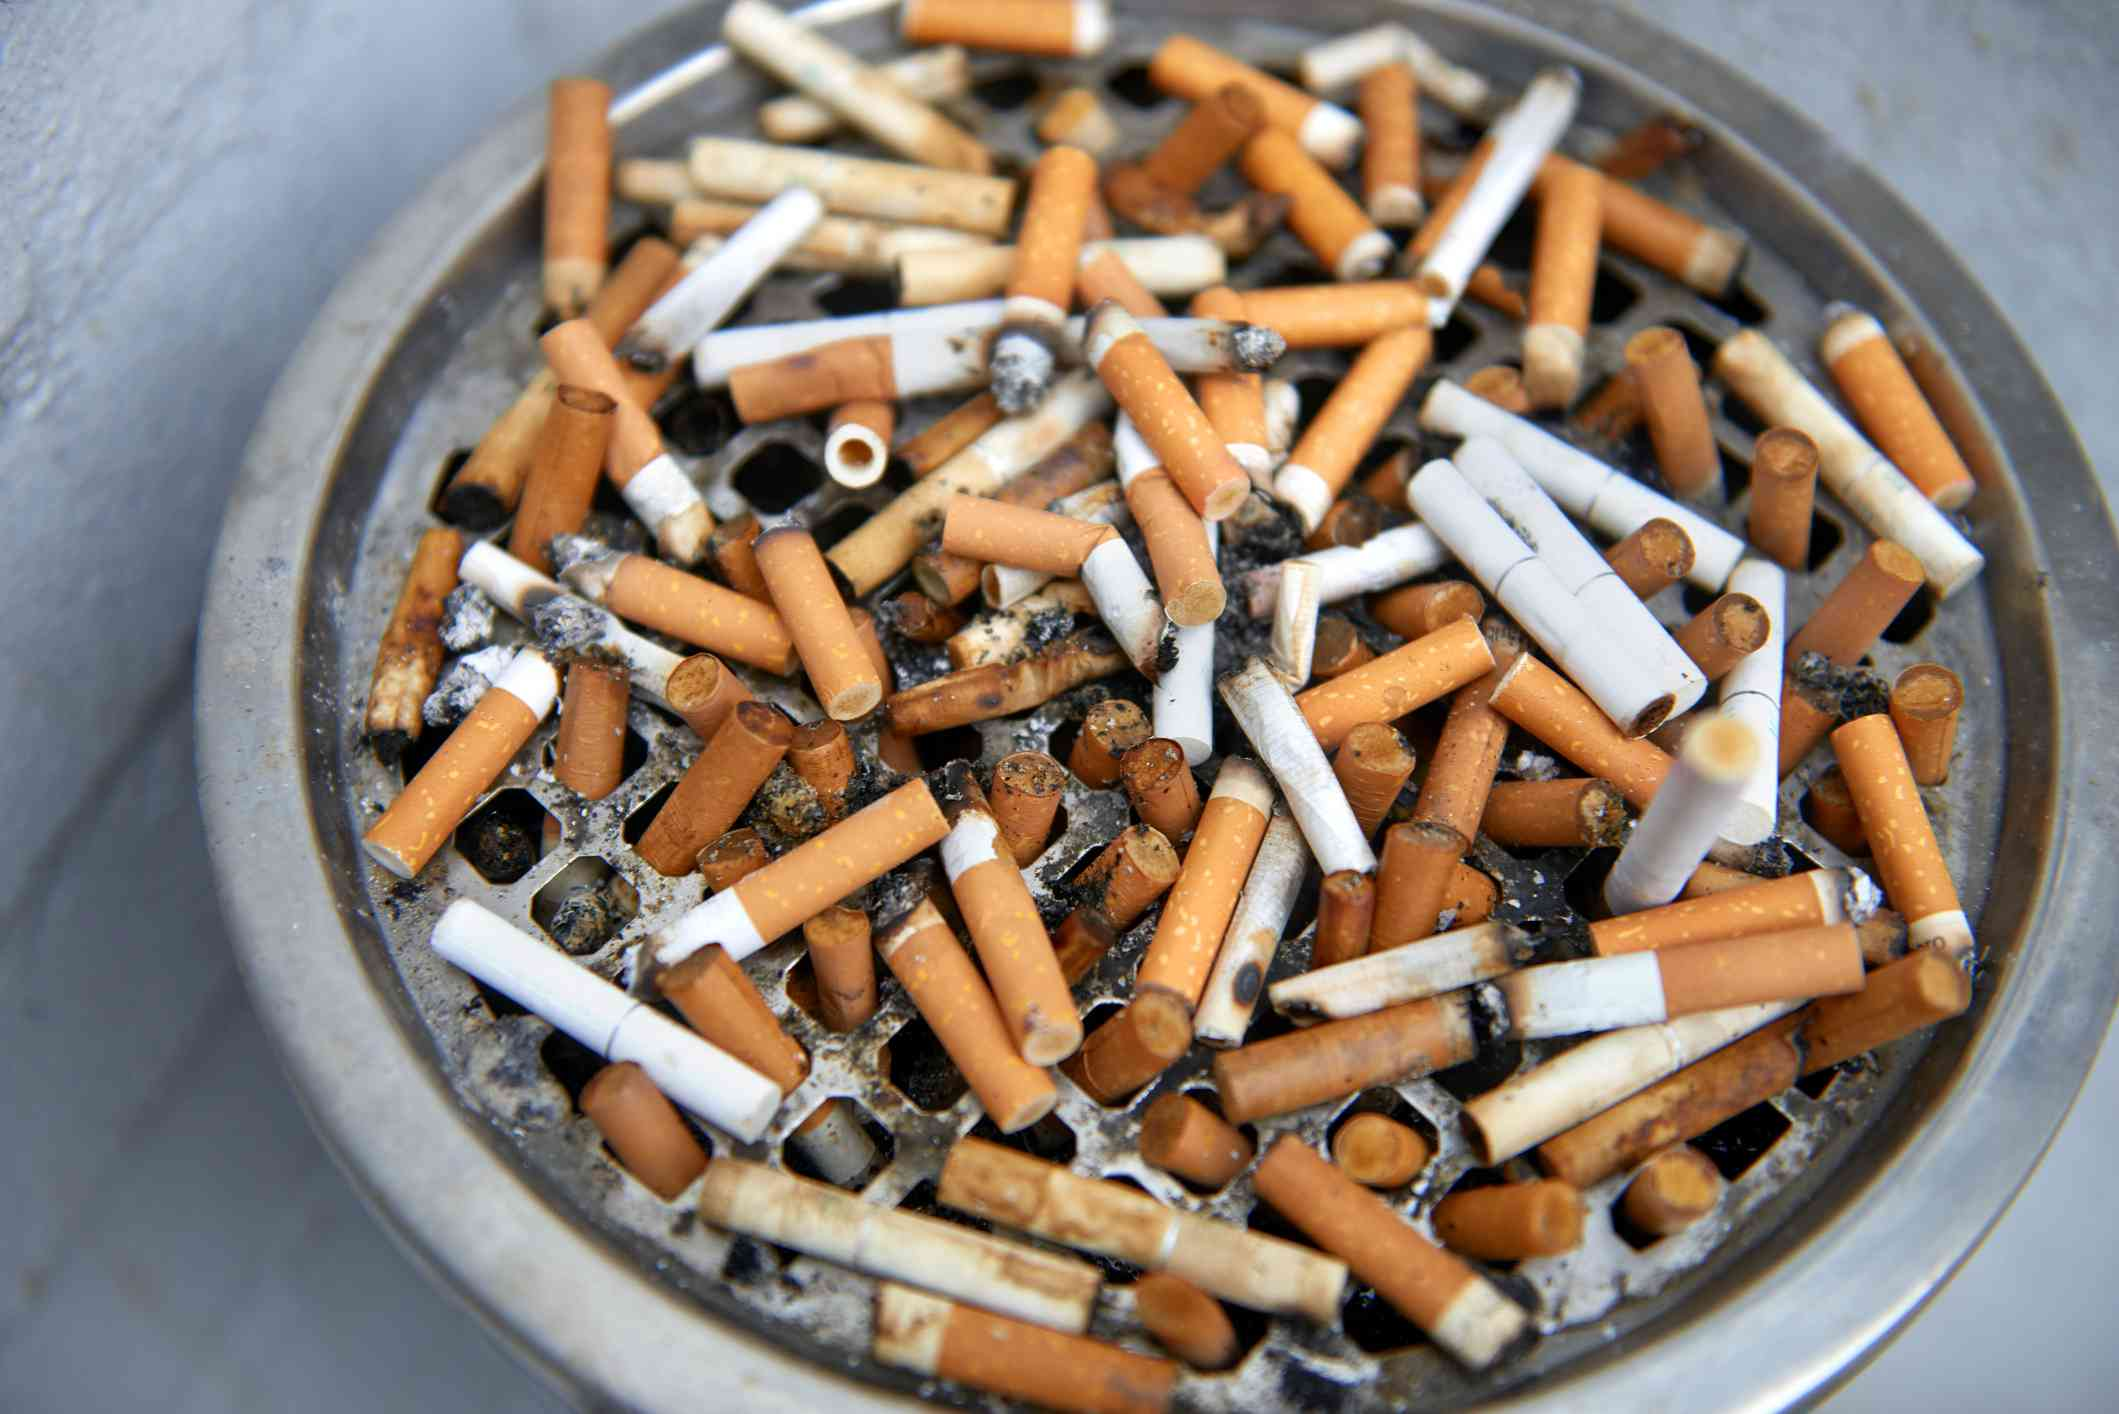 Cigarette ends in an outdoor ashtray outside restaurant